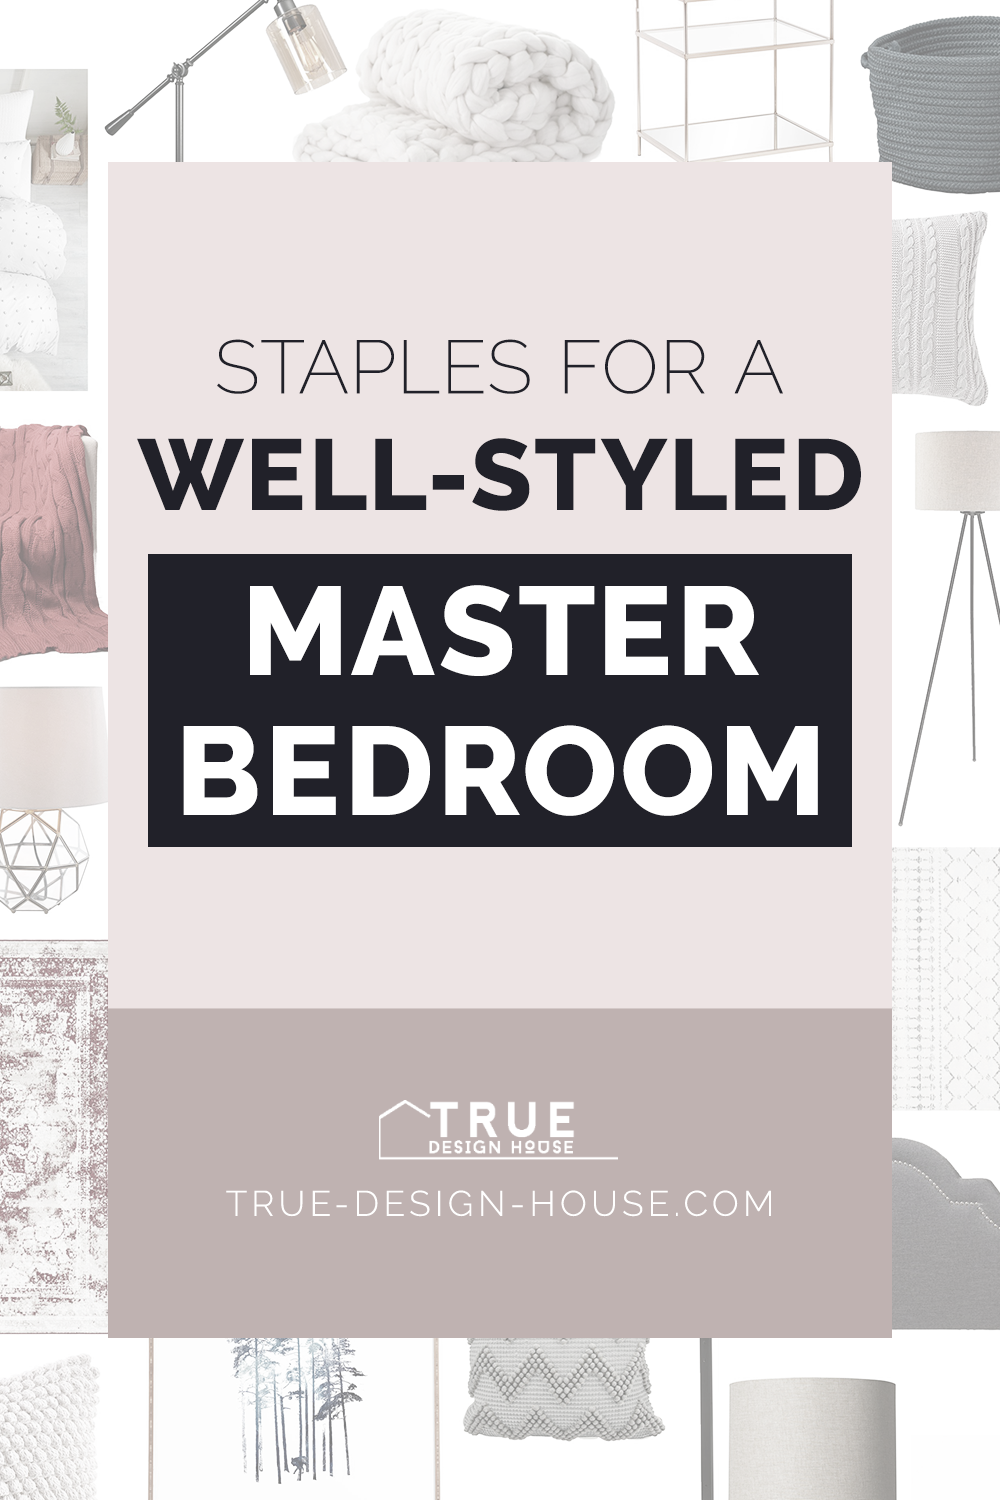 true design house - staples for a well-styled master bedroom - 46 - pinterest - 4.png